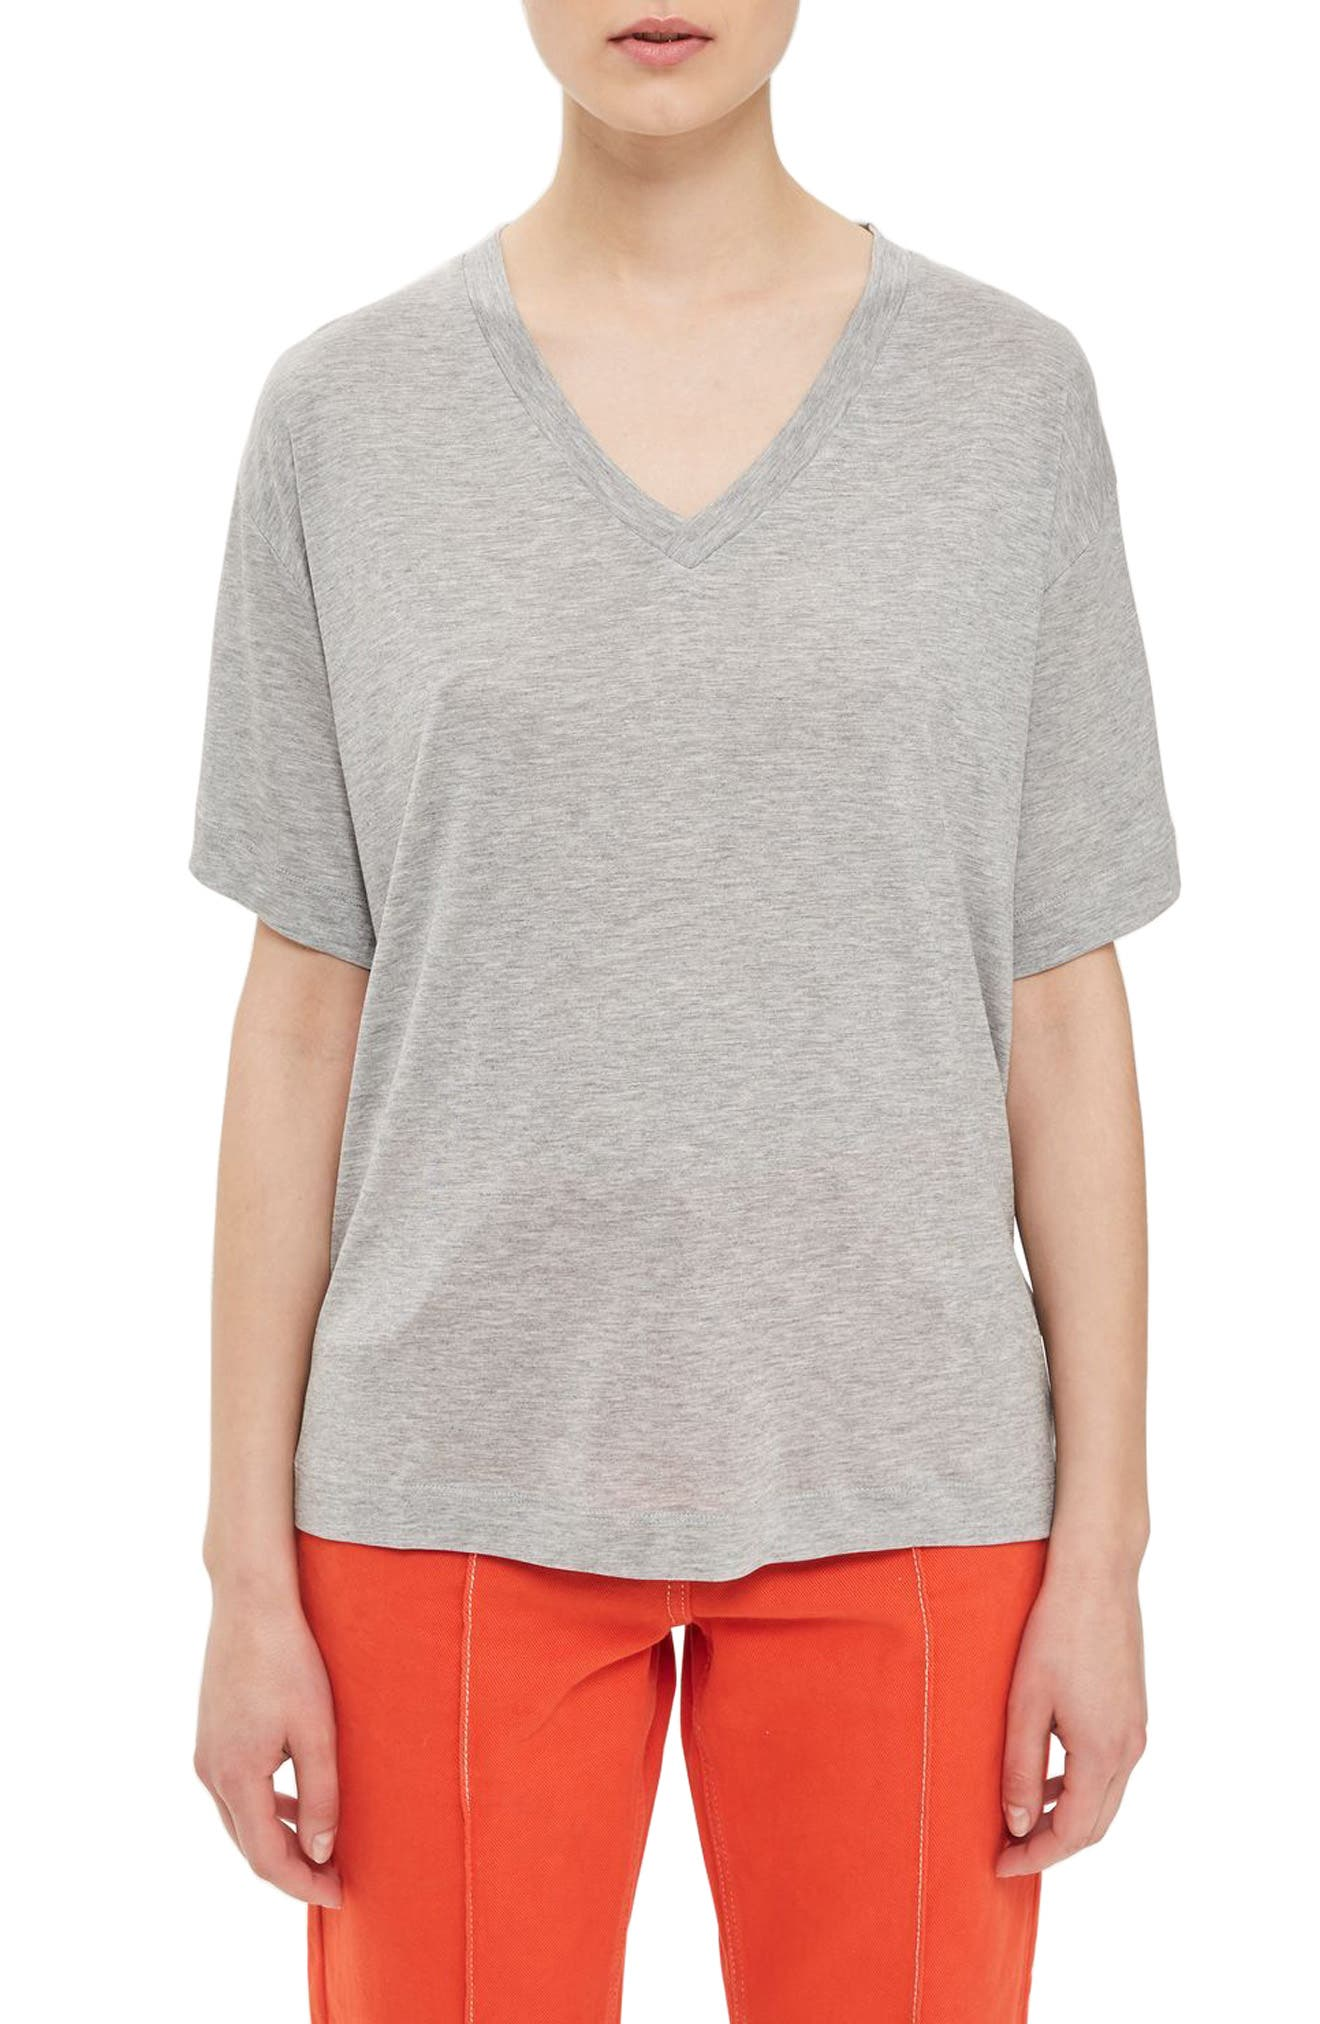 Topshop Boutique Ultimate Relax Tee